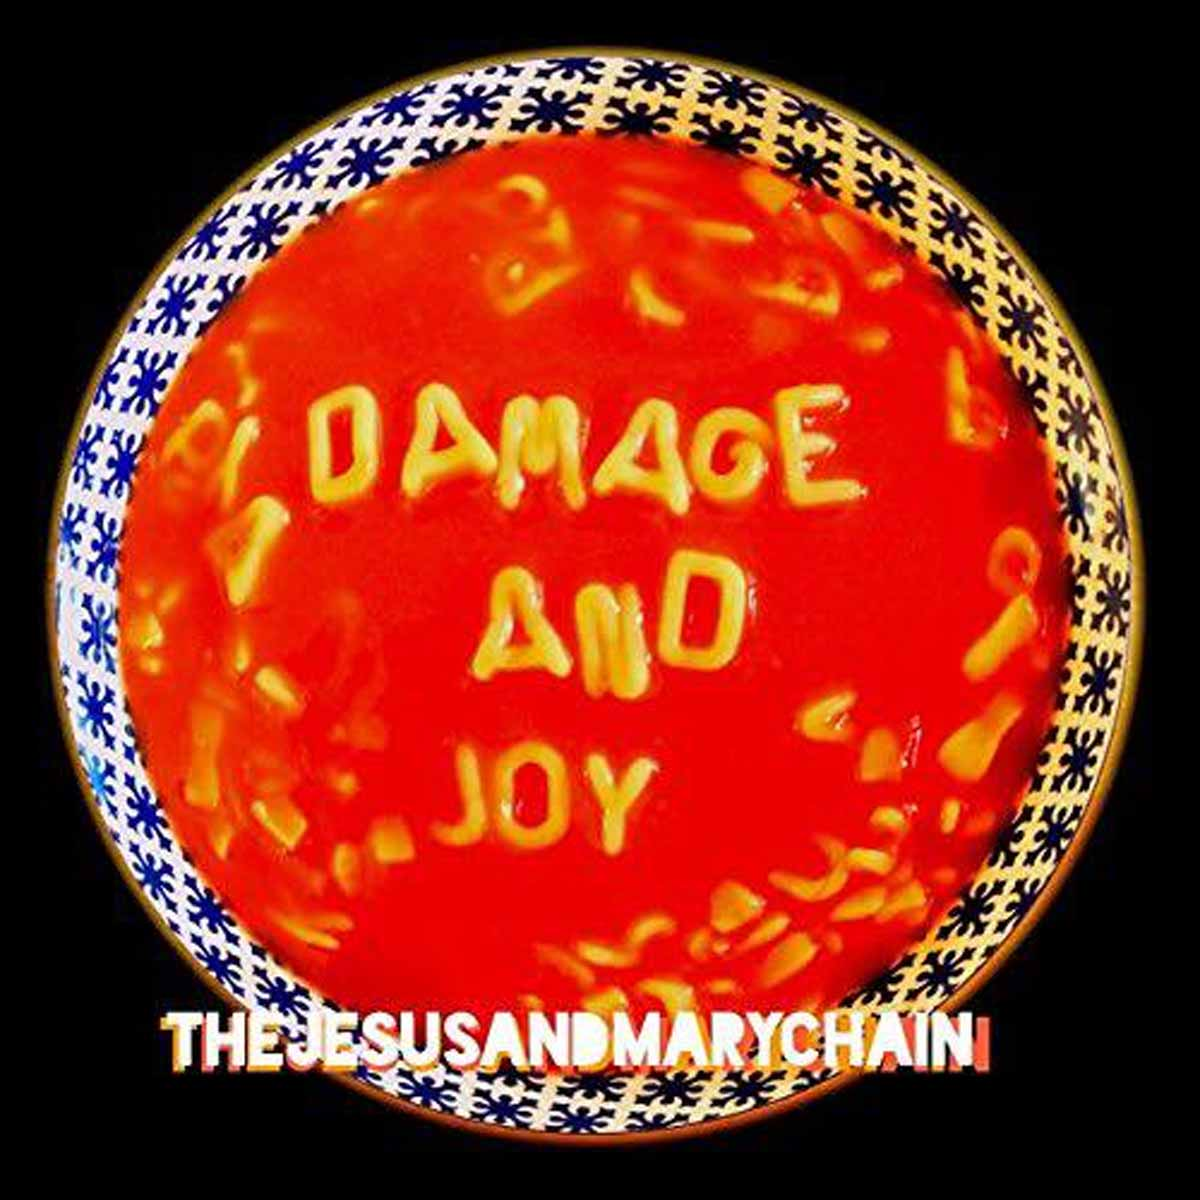 THE JESUS AND MAY CHAIN - Damage And Joy